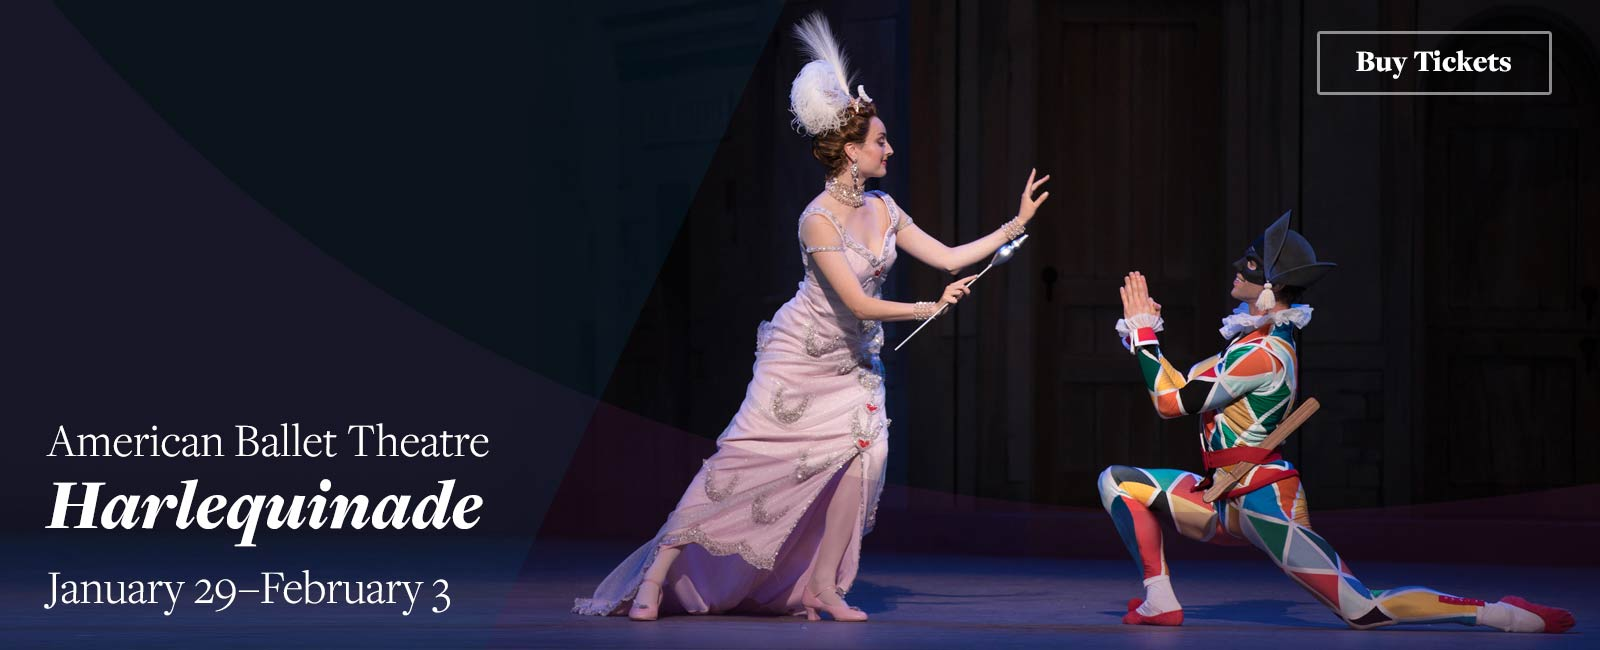 American Ballet Theatre: Harlequinade